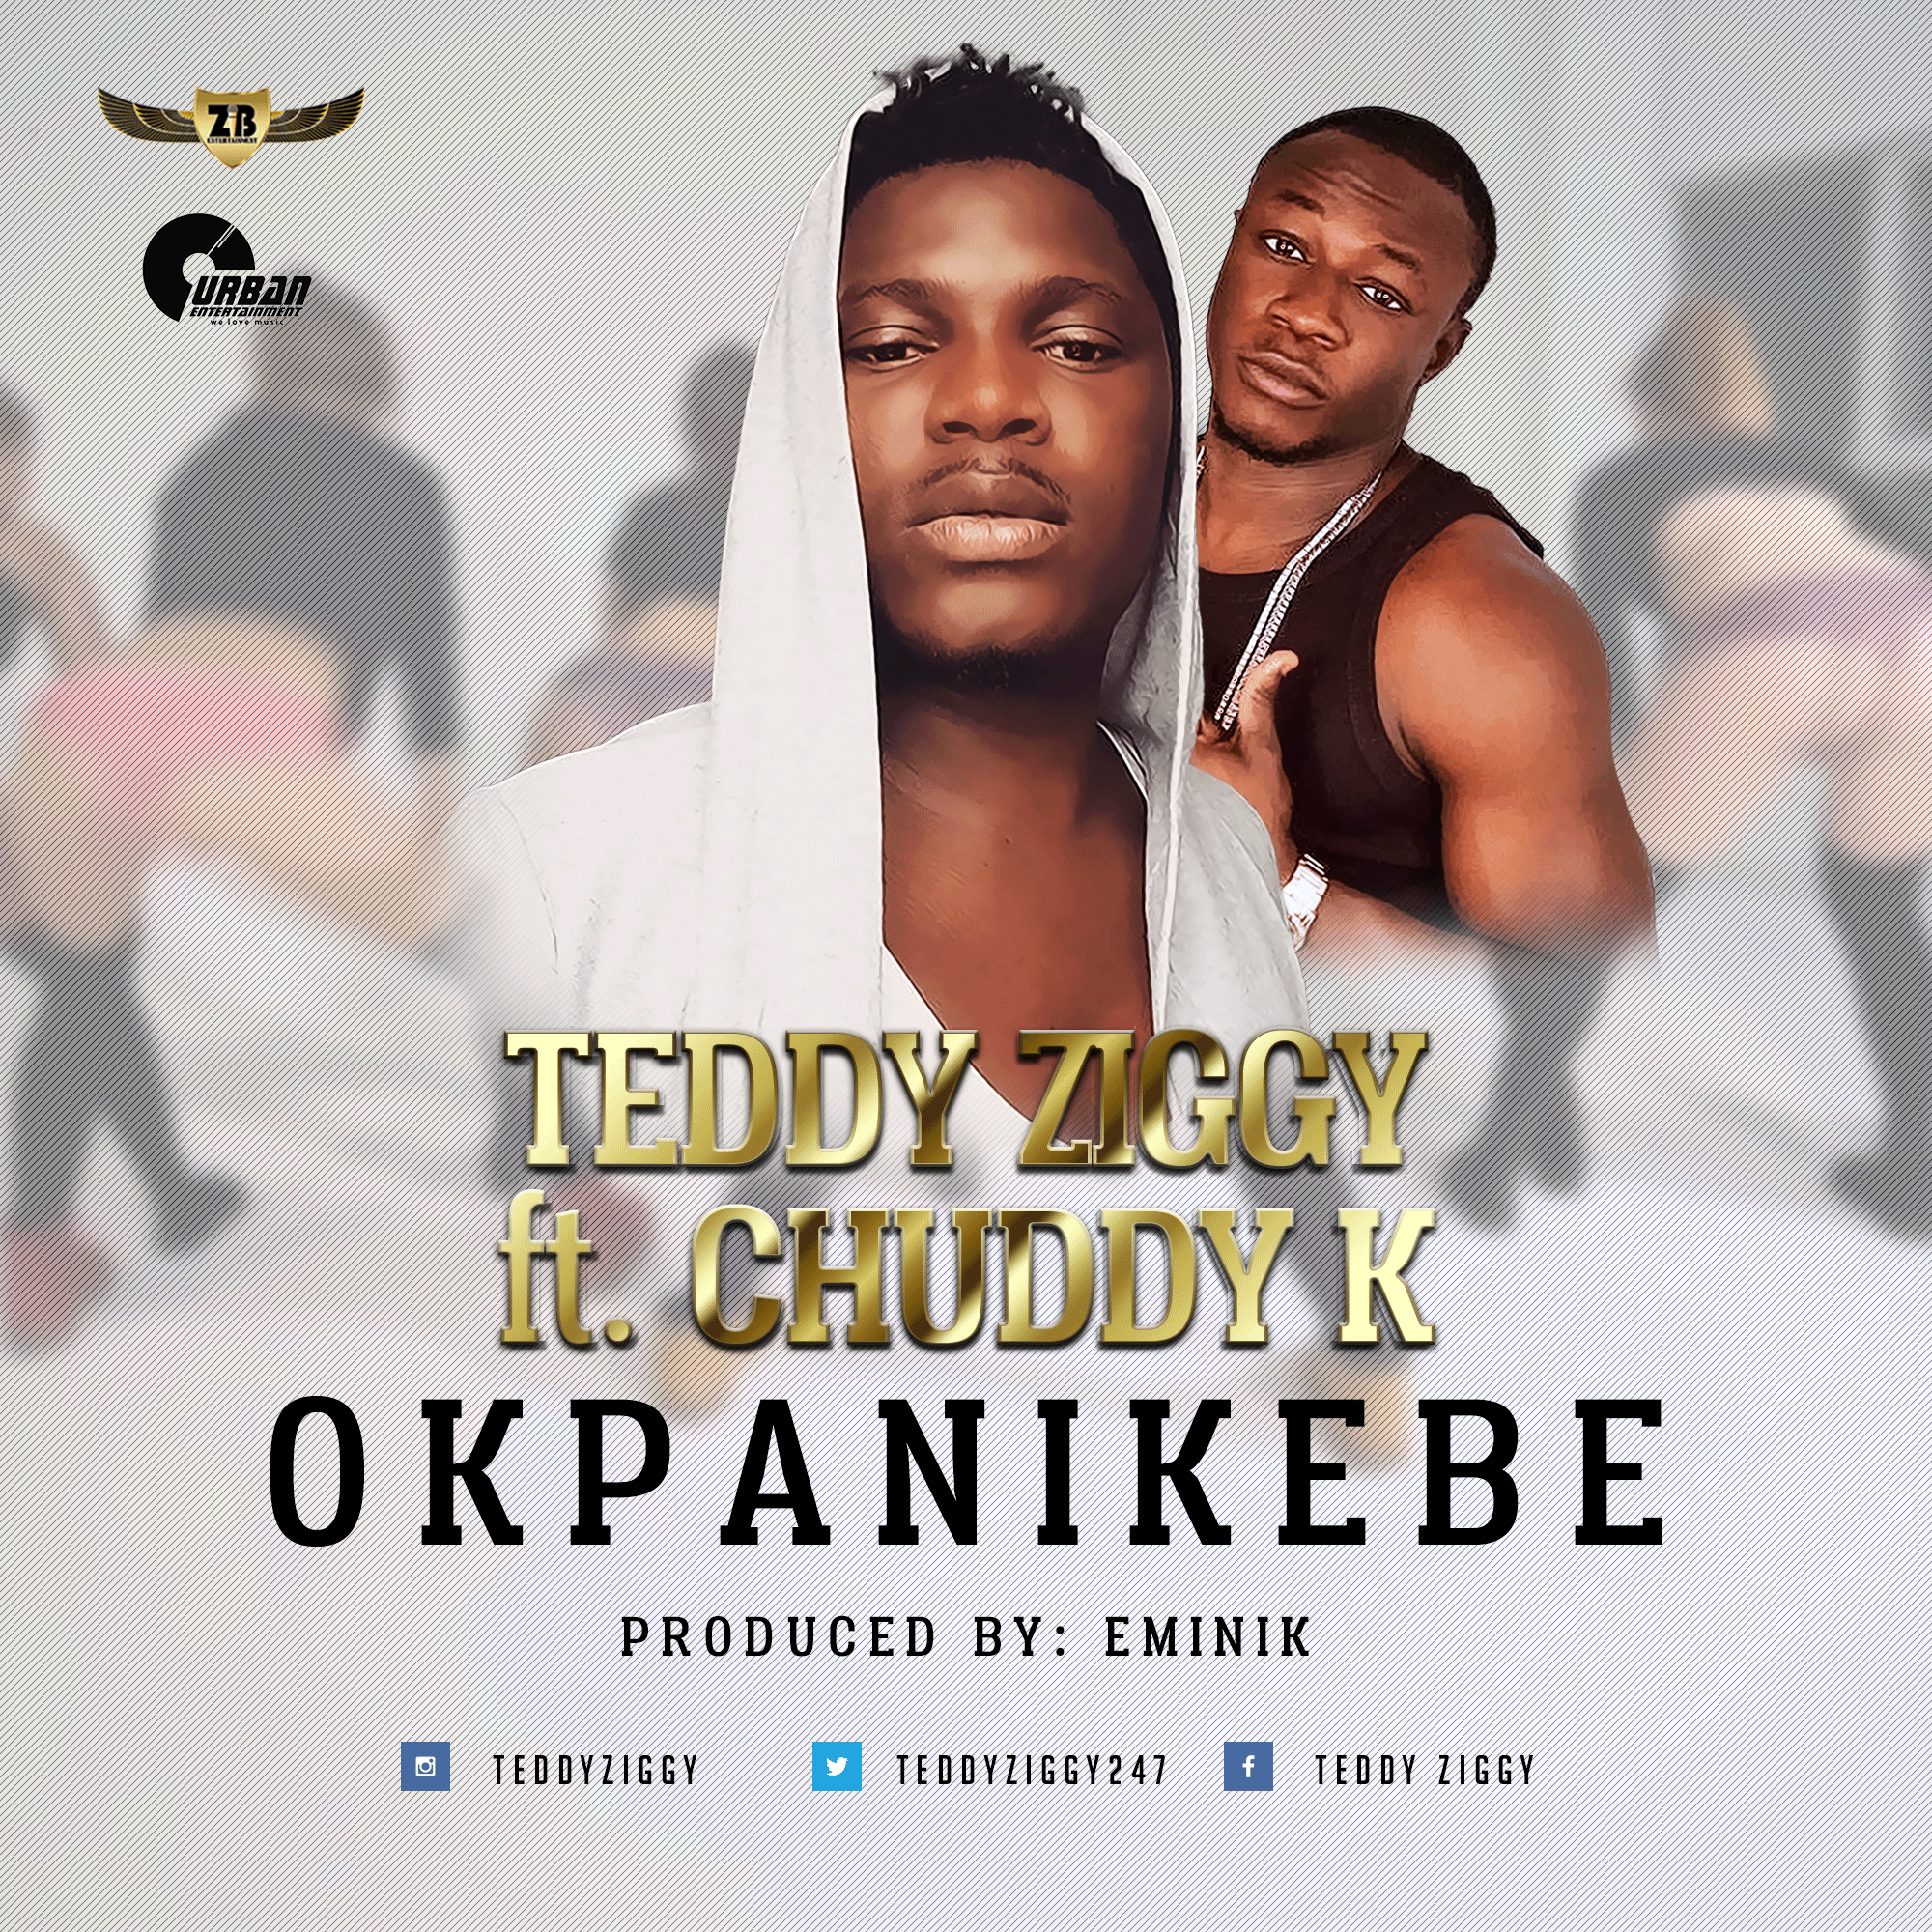 Teddy Ziggy ft. Chuddy K – Okpanikebe (prod. Eminik)